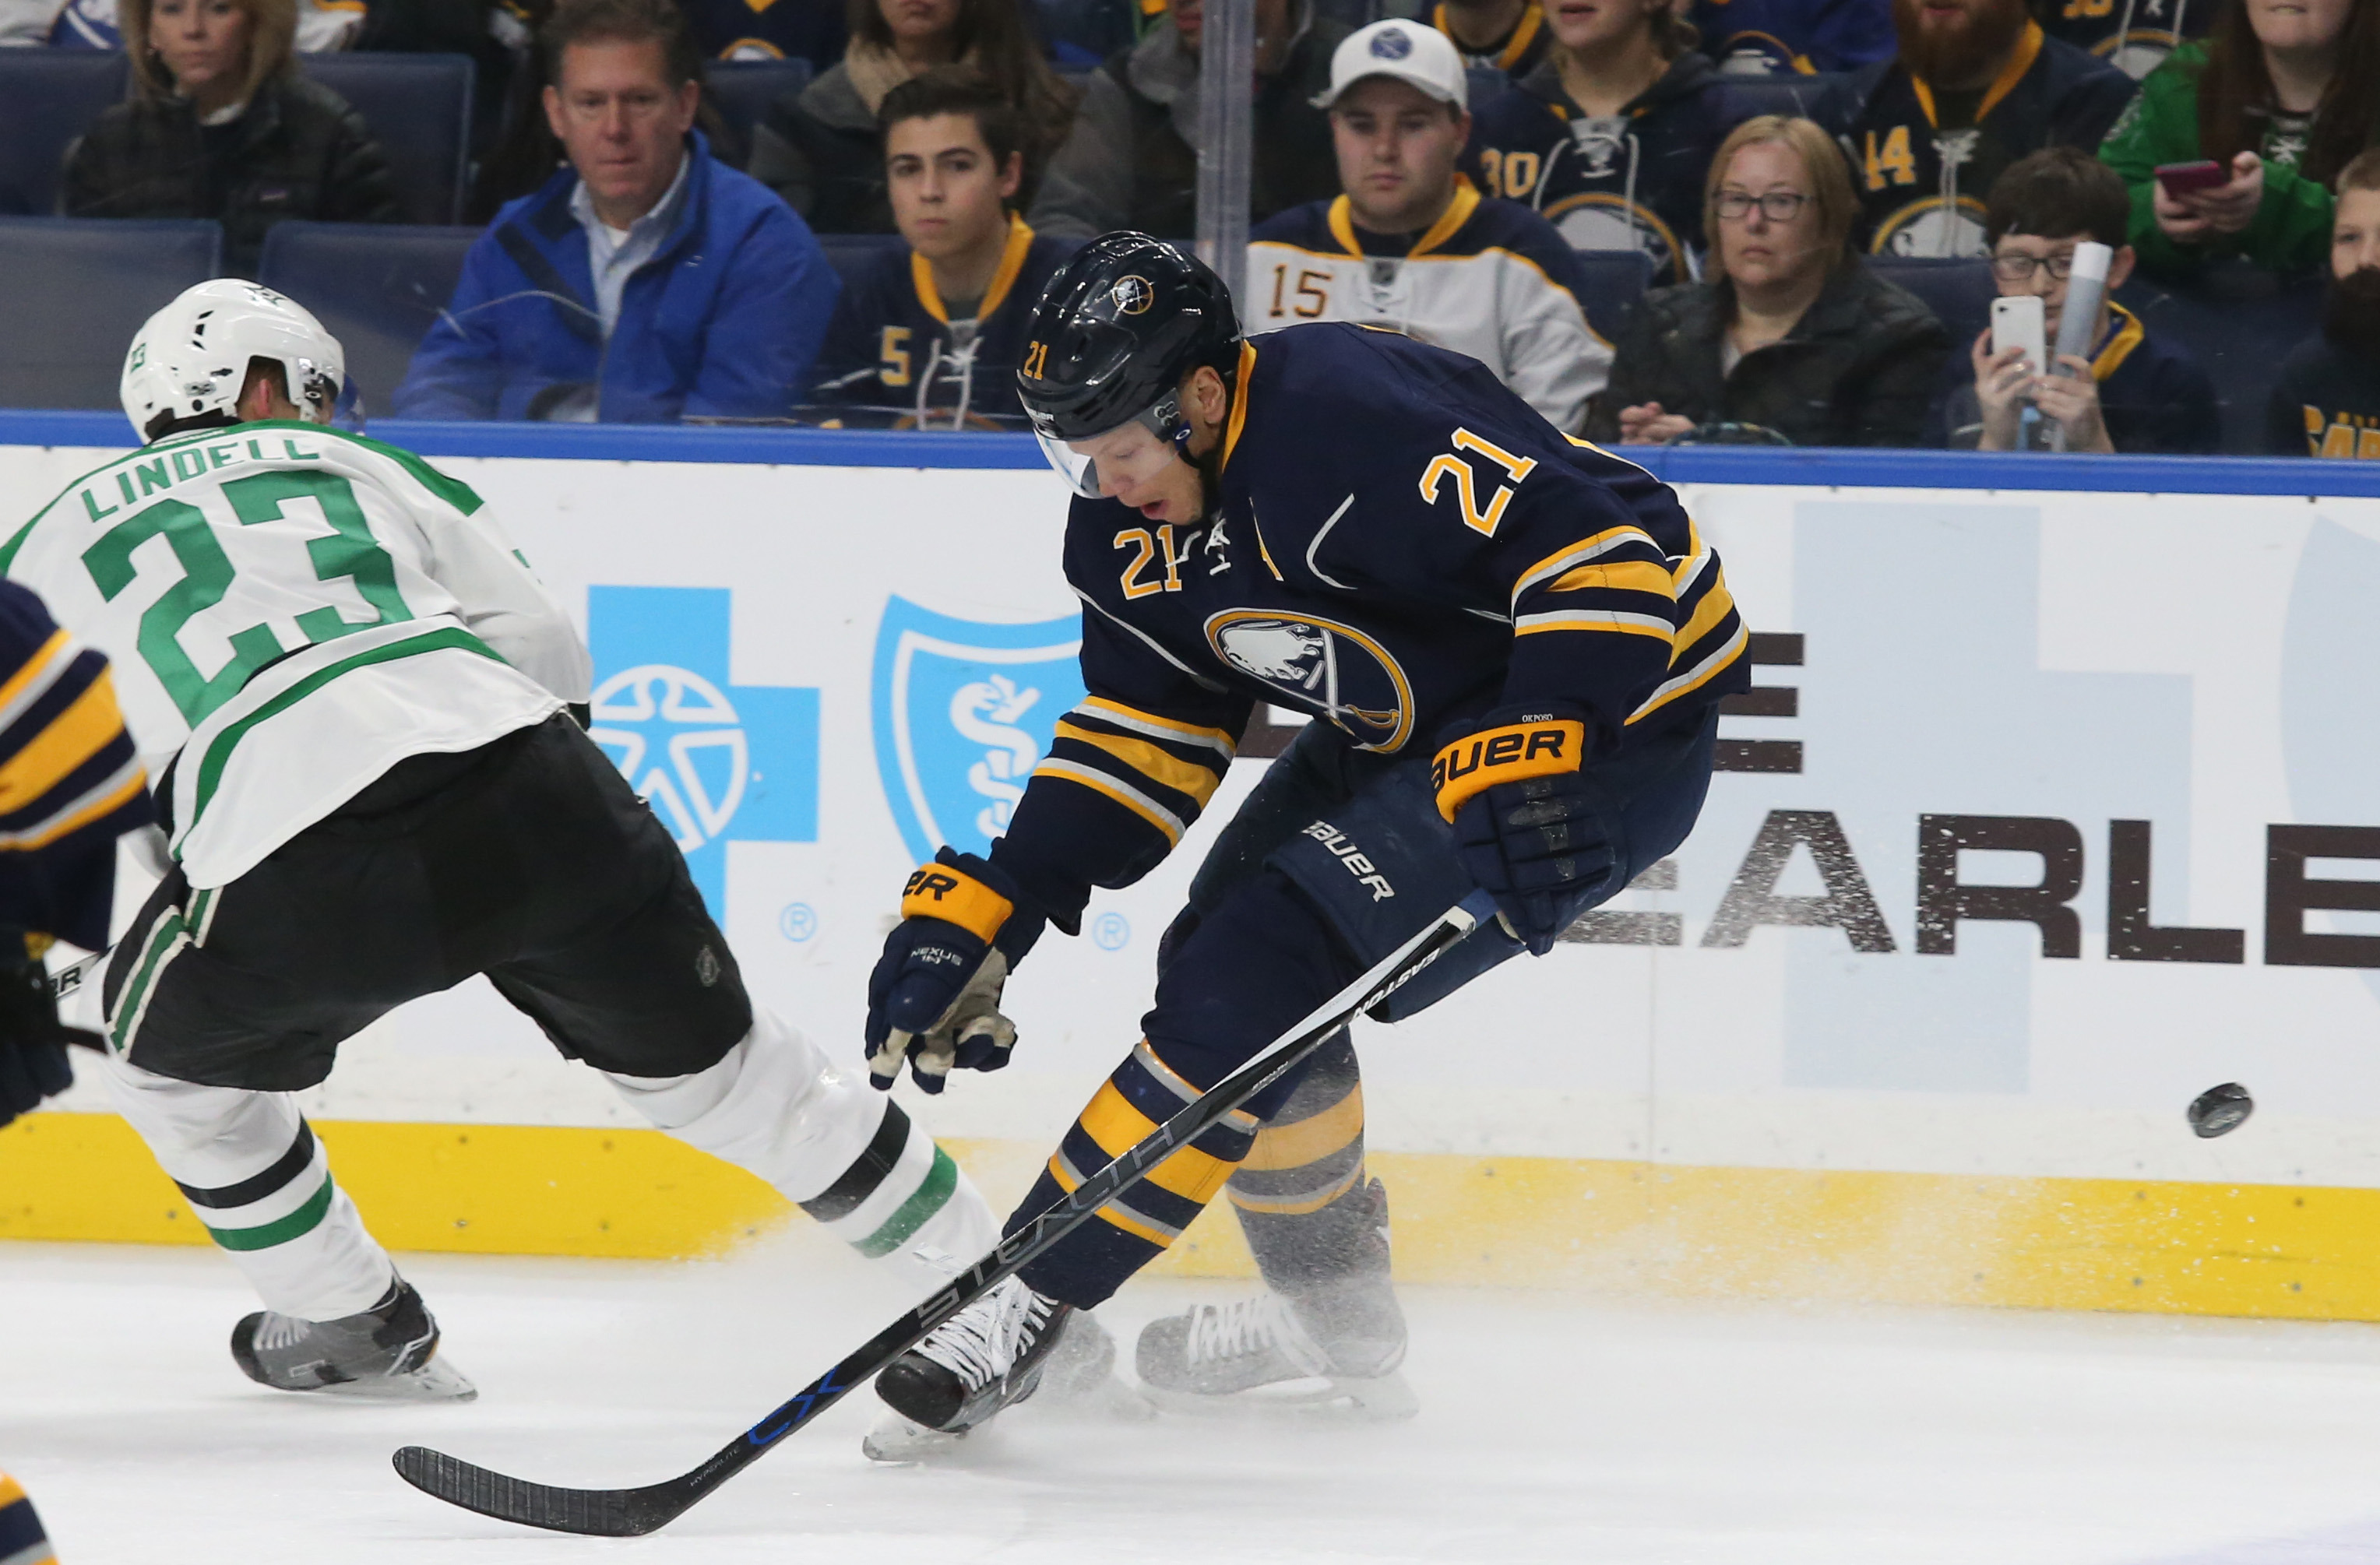 Kyle Okposo will play in his 600th NHL game on Friday. (James P. McCoy/News file photo)